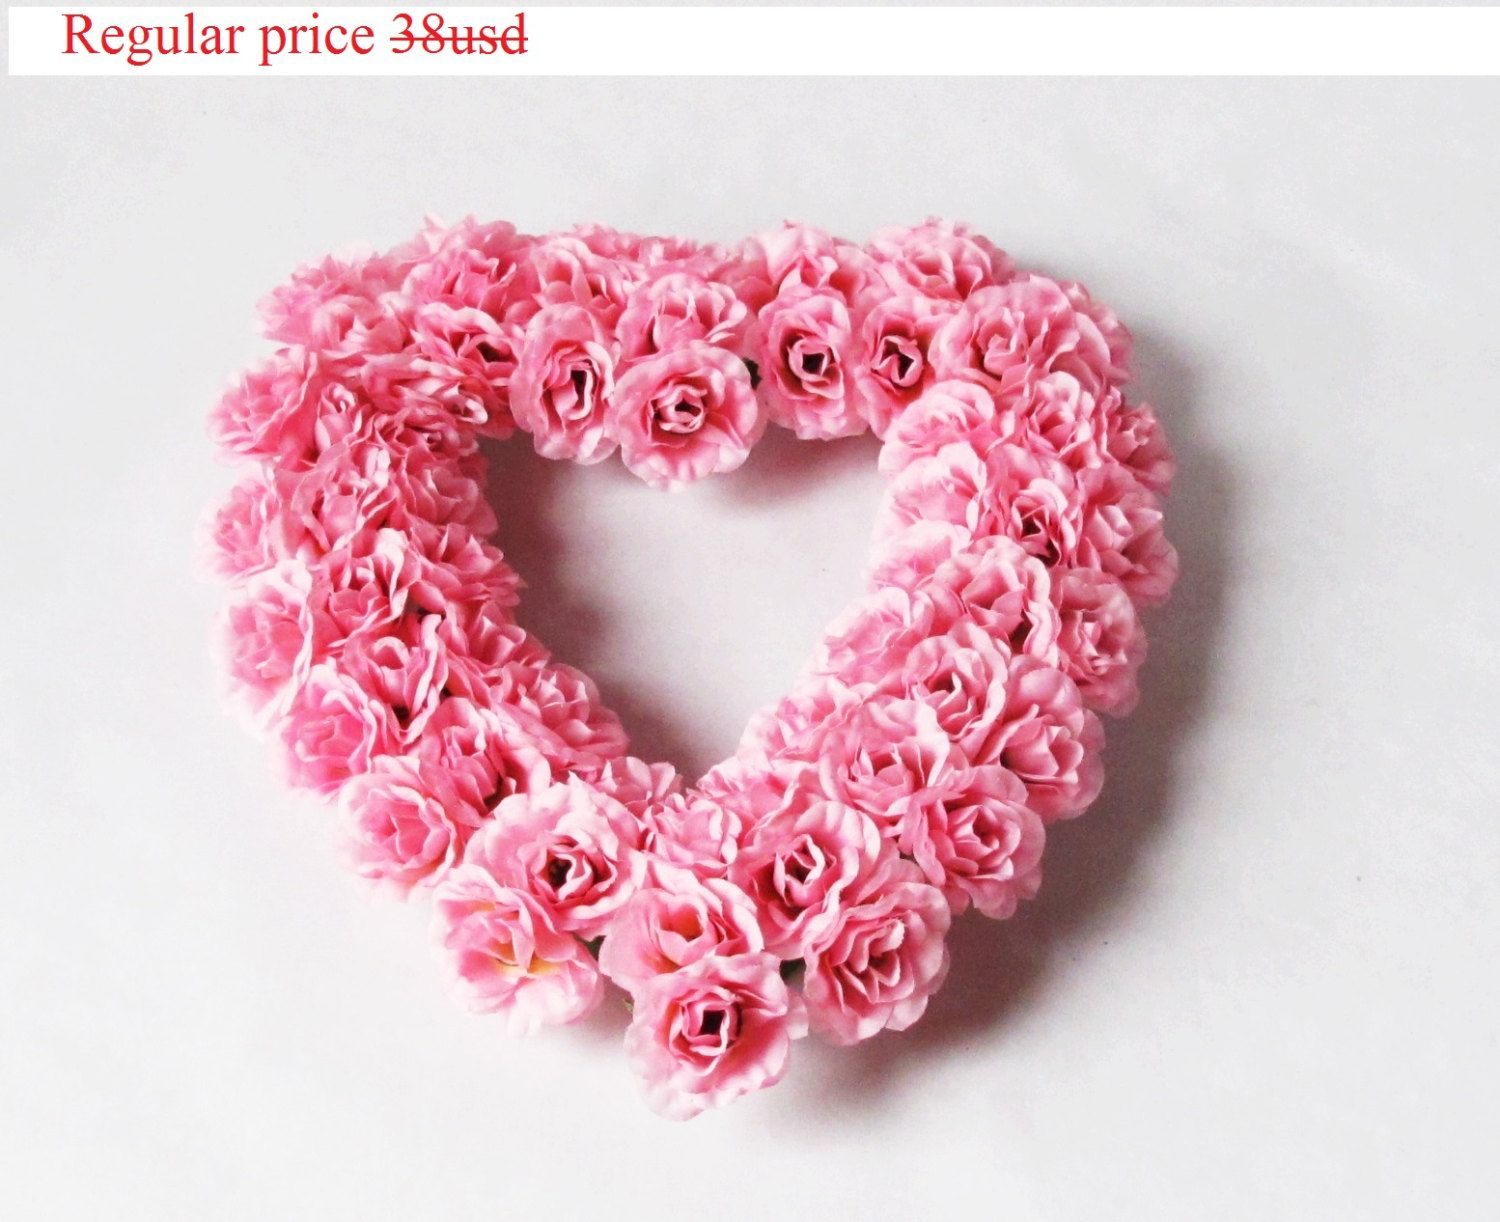 GRAND SALE Wedding Car Table Decor Pink Rose Heart Decoration Shabby ...